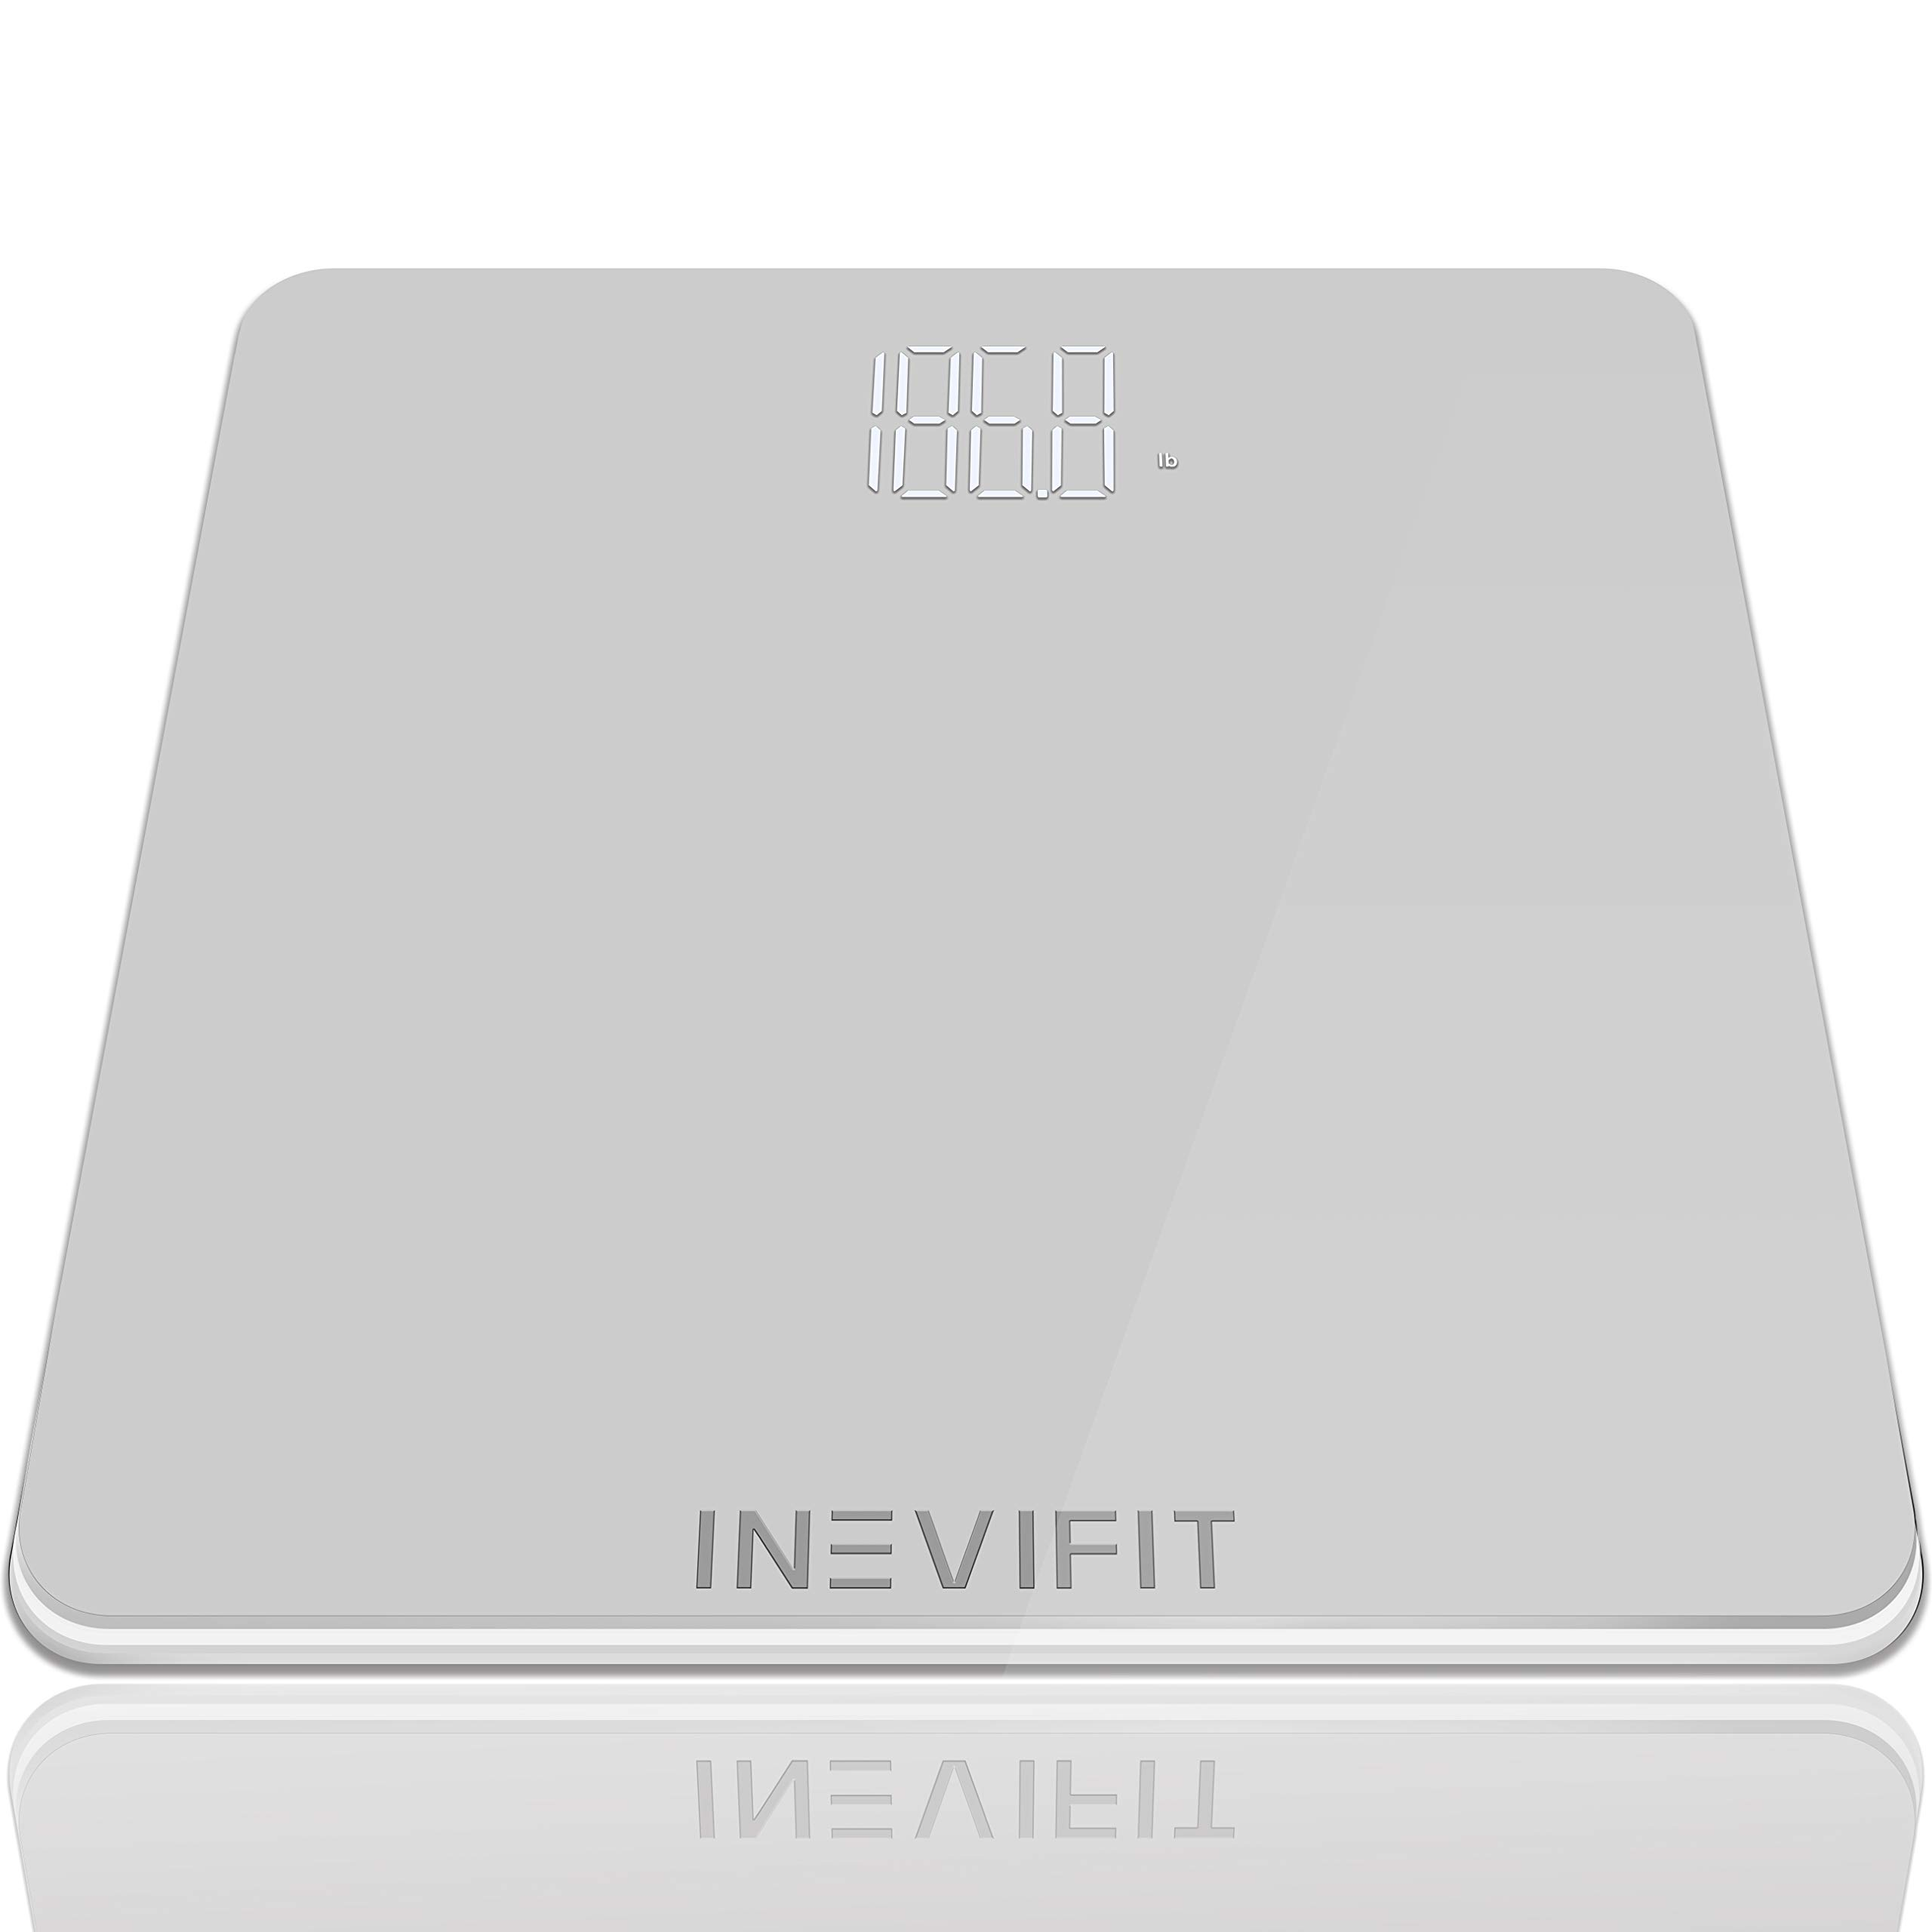 INEVIFIT Bathroom Scale, Highly Accurate Digital Bathroom Body Scale, Precisely Measures Weight up to 400 lbs by INEVIFIT